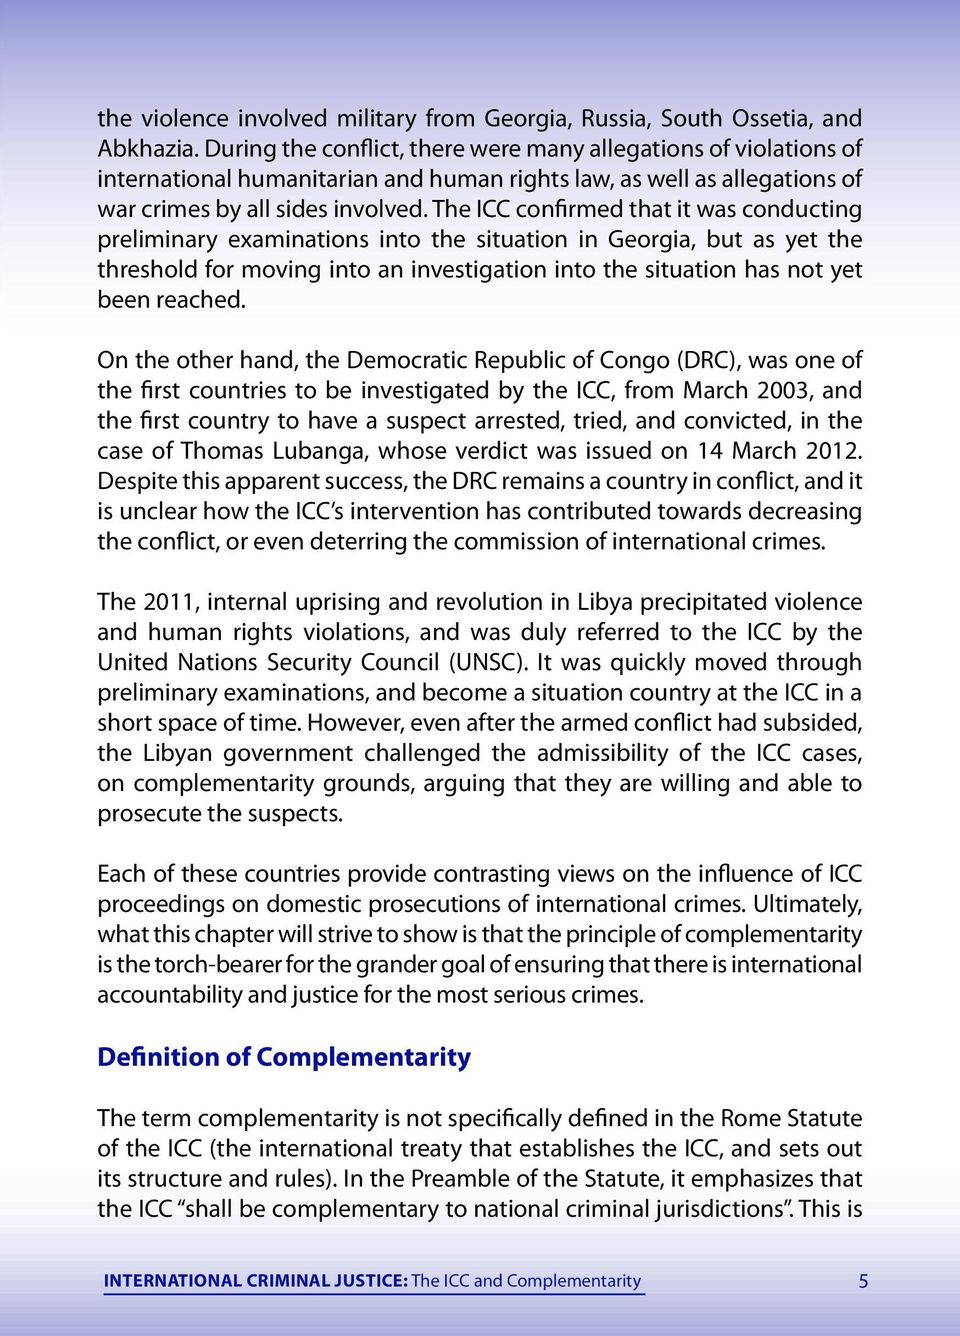 the icc confirmed that it was conducting preliminary examinations into the situation in georgia but